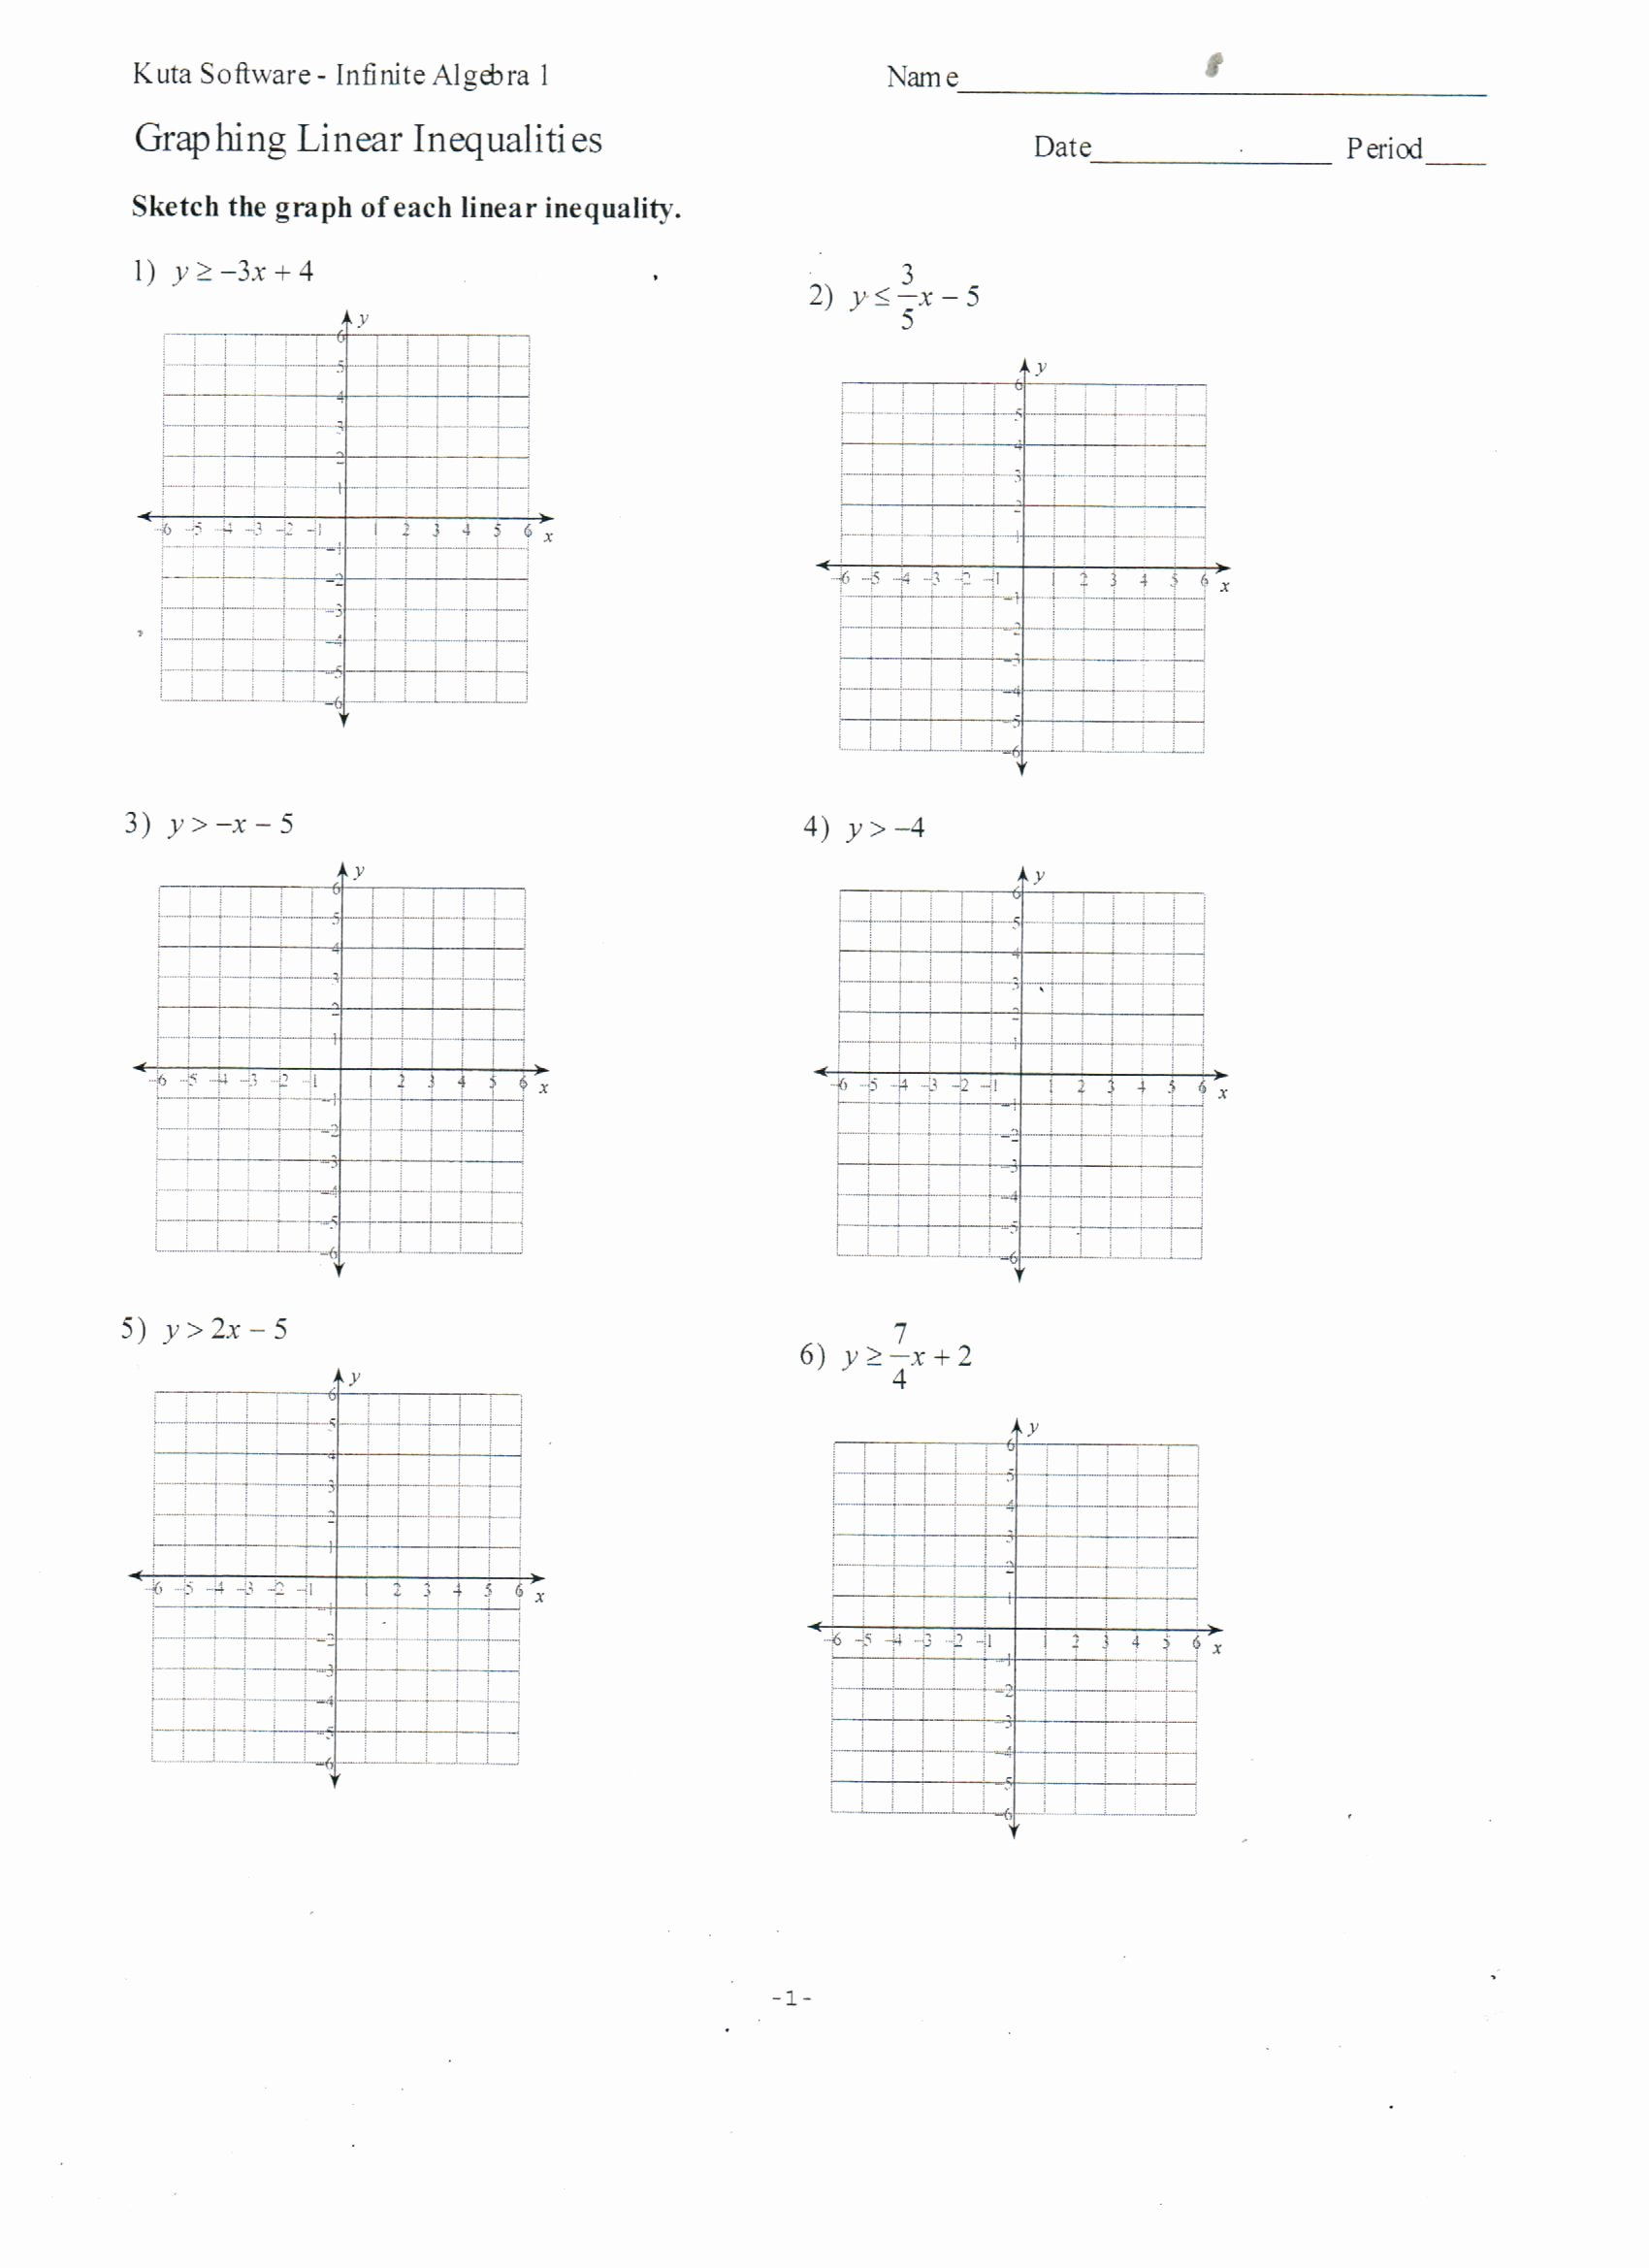 Graphing Linear Functions Worksheet Answers Best Of Graphing Linear Equations Worksheet and Answers Tessshebaylo